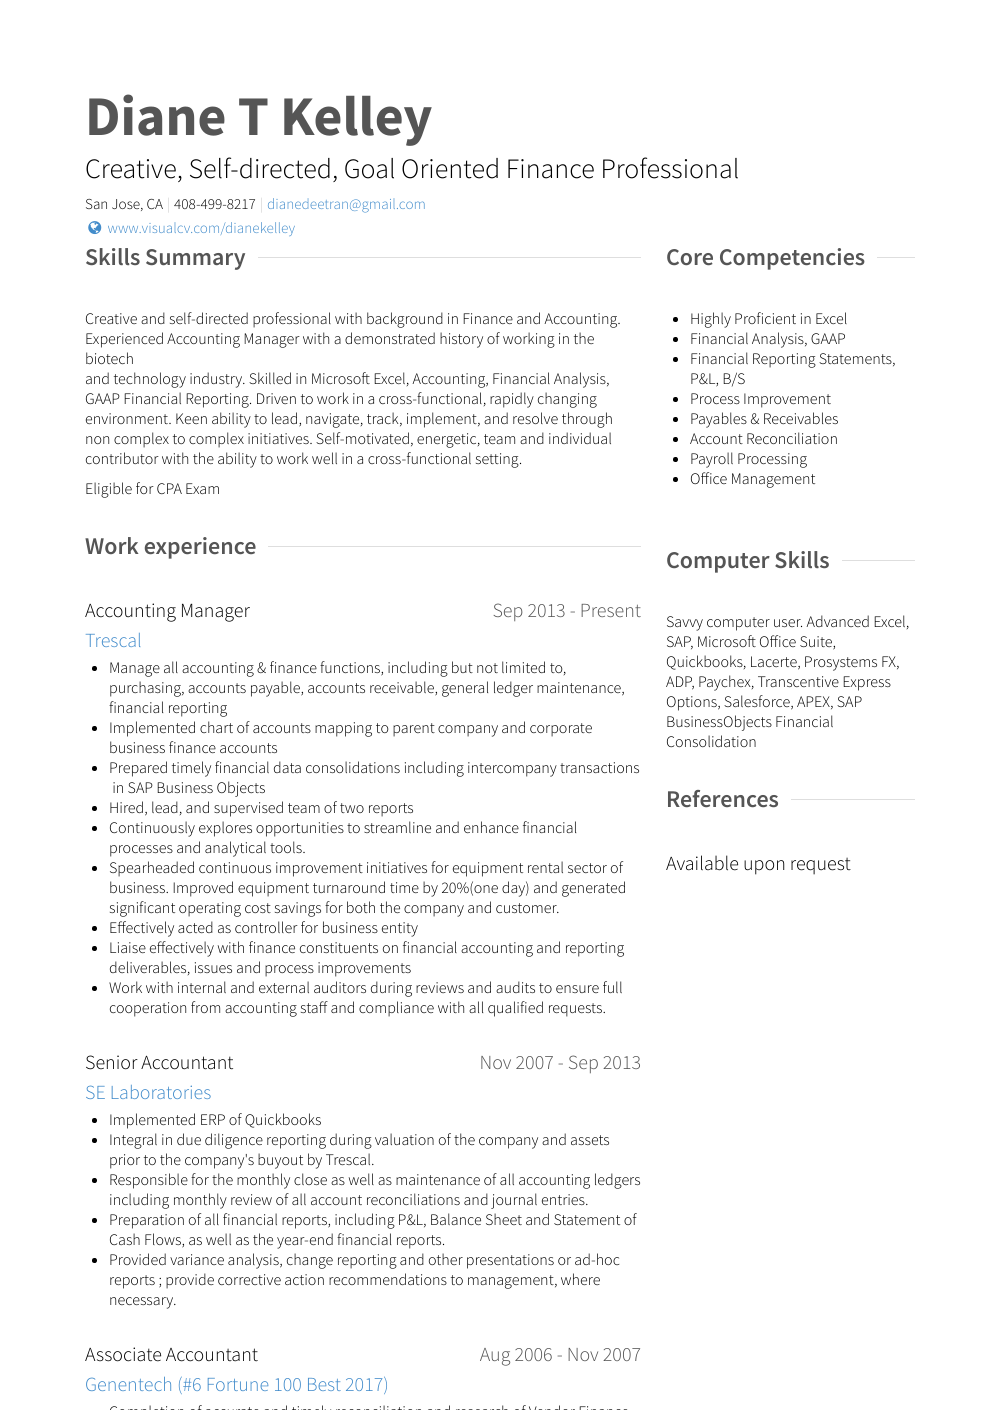 Accounting Manager Resume Samples And Templates Visualcv